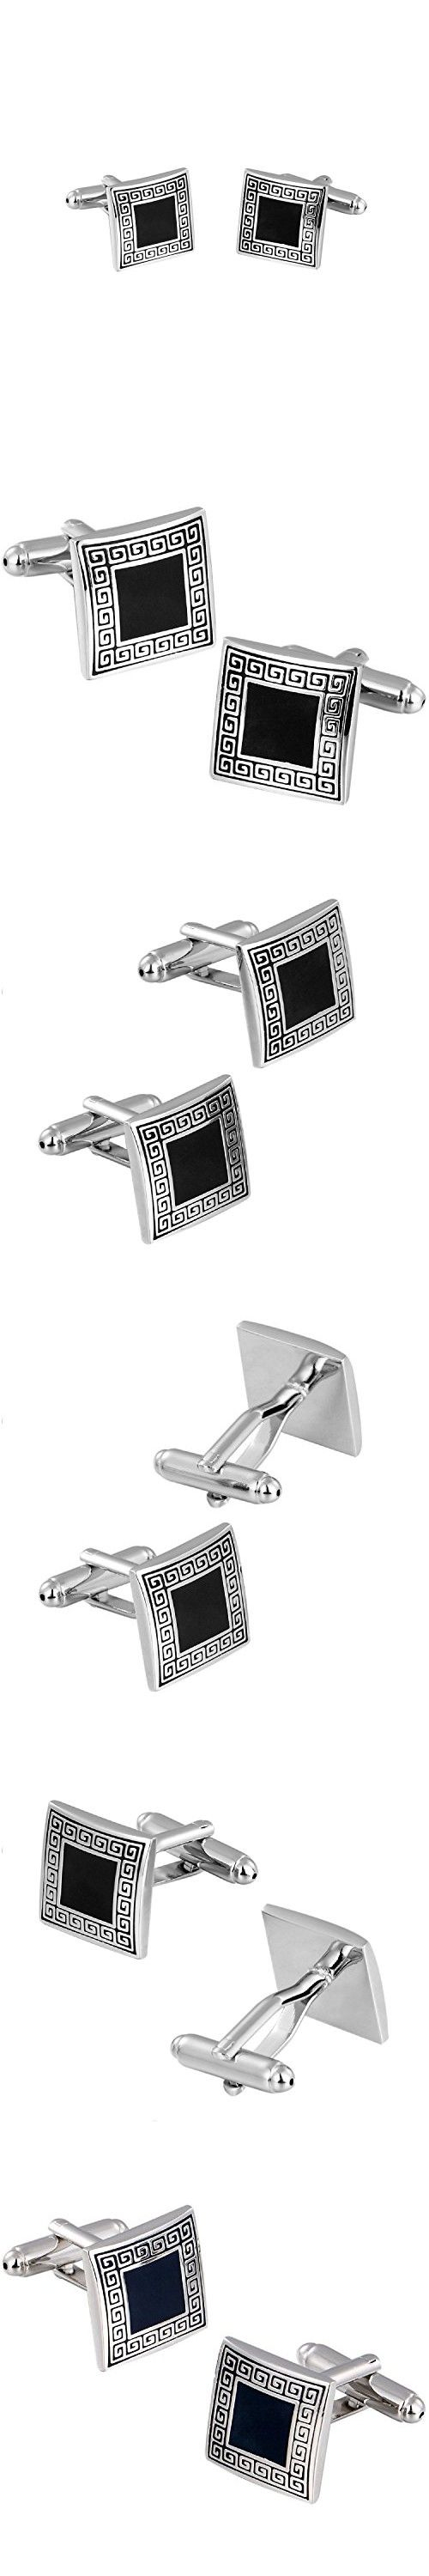 Mens Cufflinks Tuxedo Studs and Links Set for Wedding Business Best Gift for Men Silver Carved Pattern